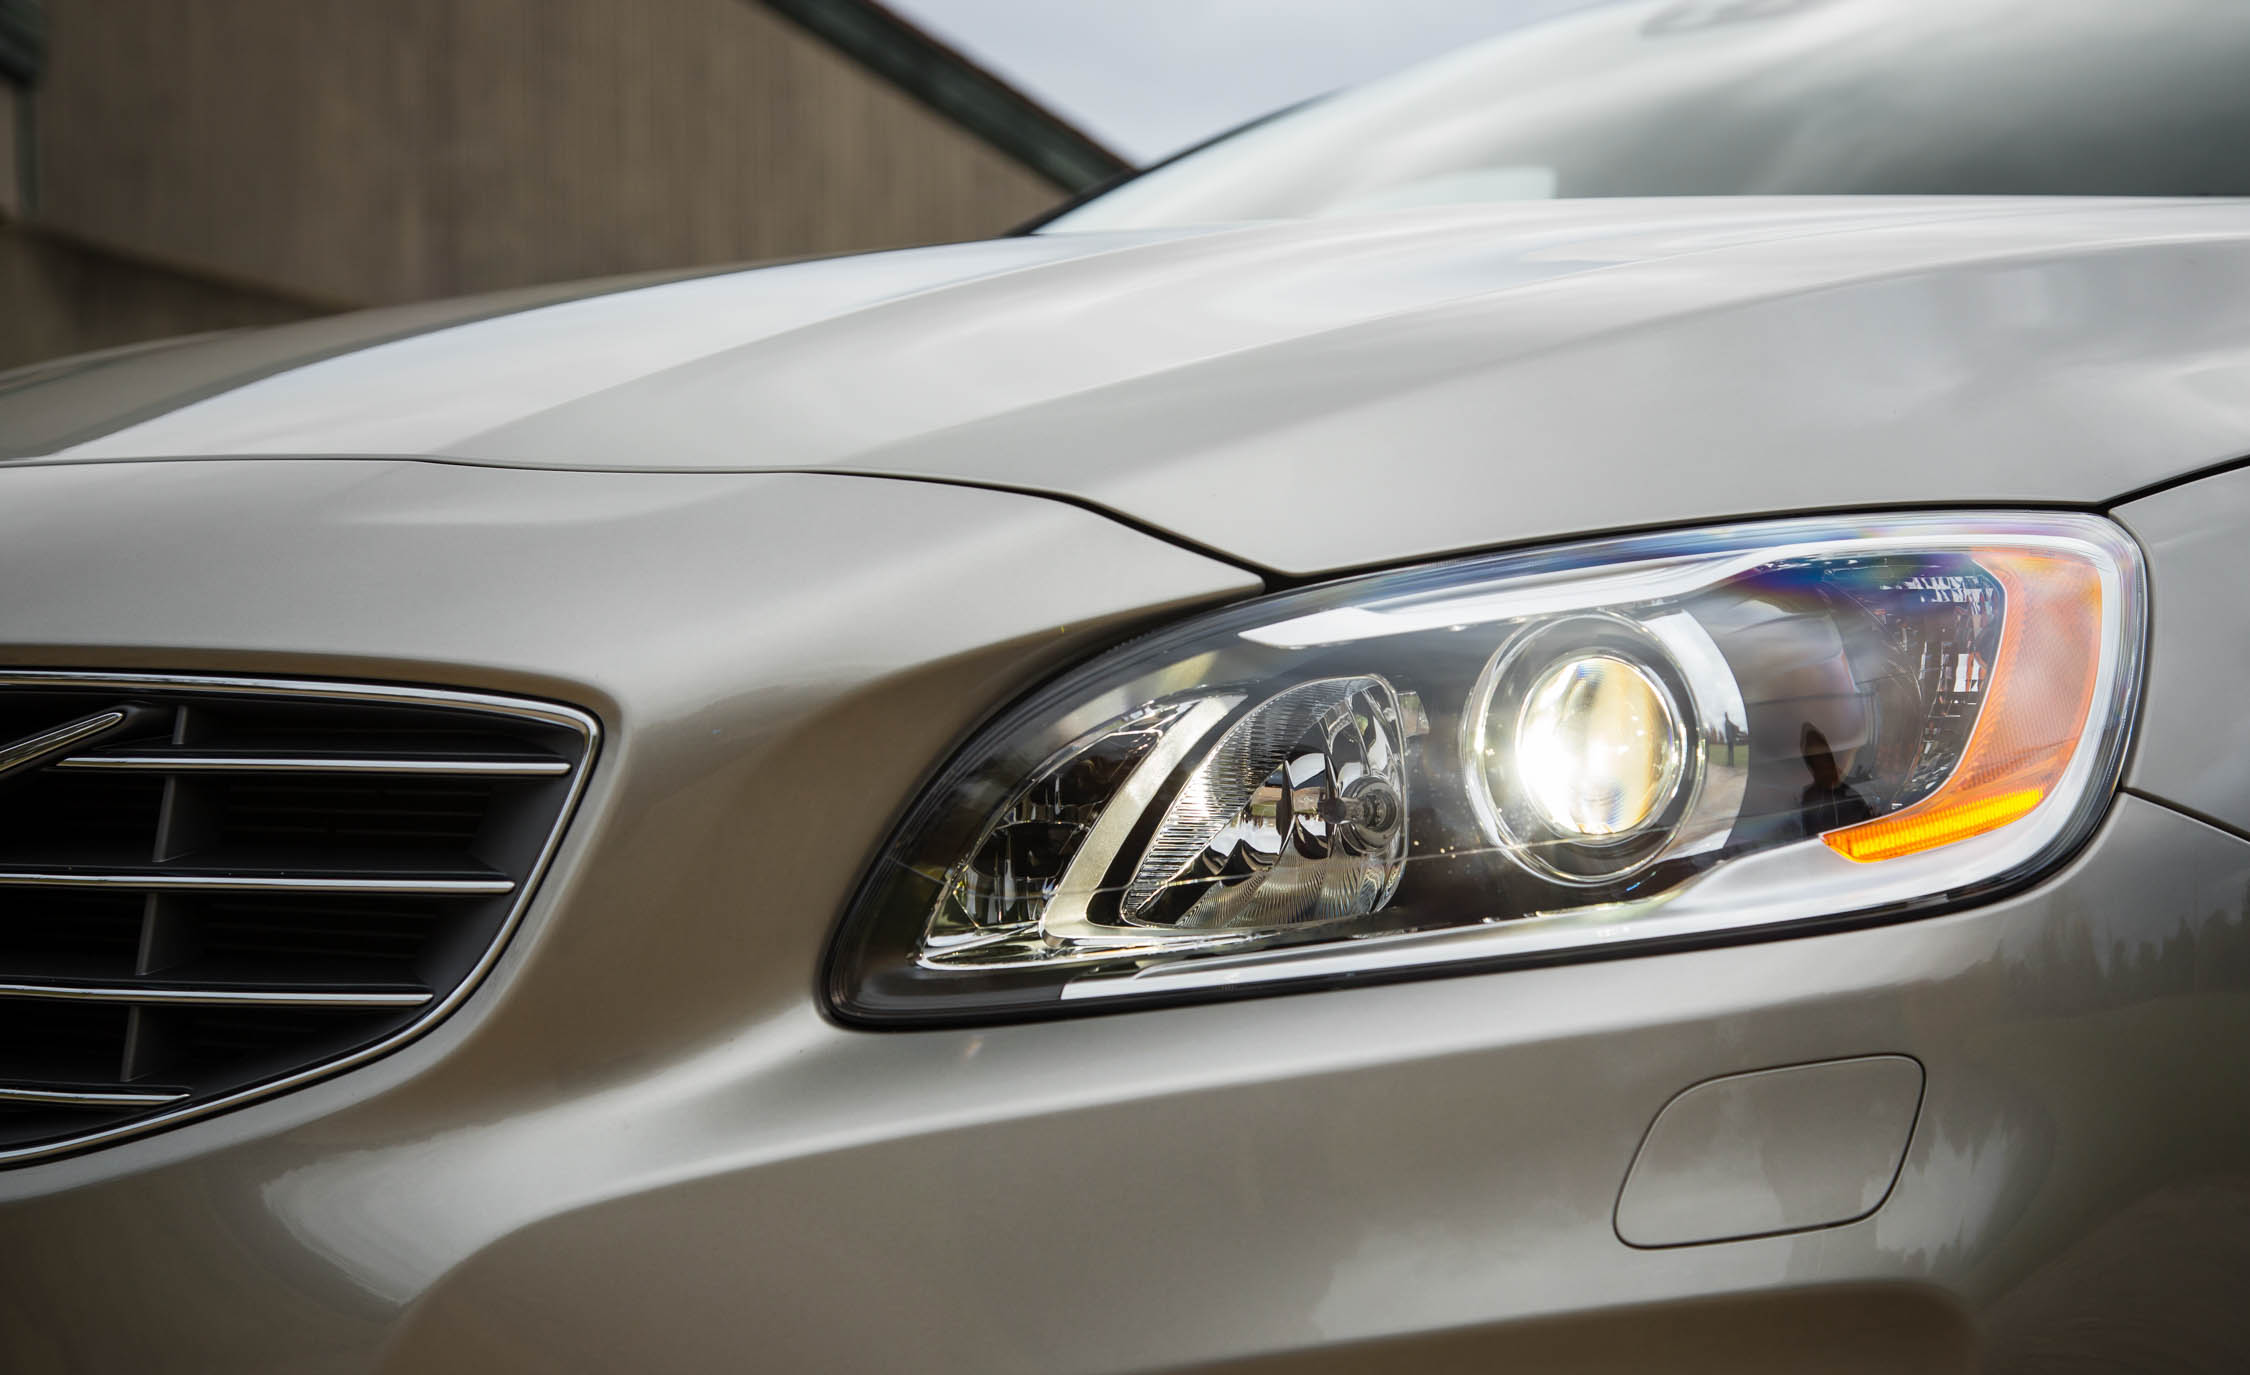 2016 Volvo S60 T5 Inscription Exterior Headlight